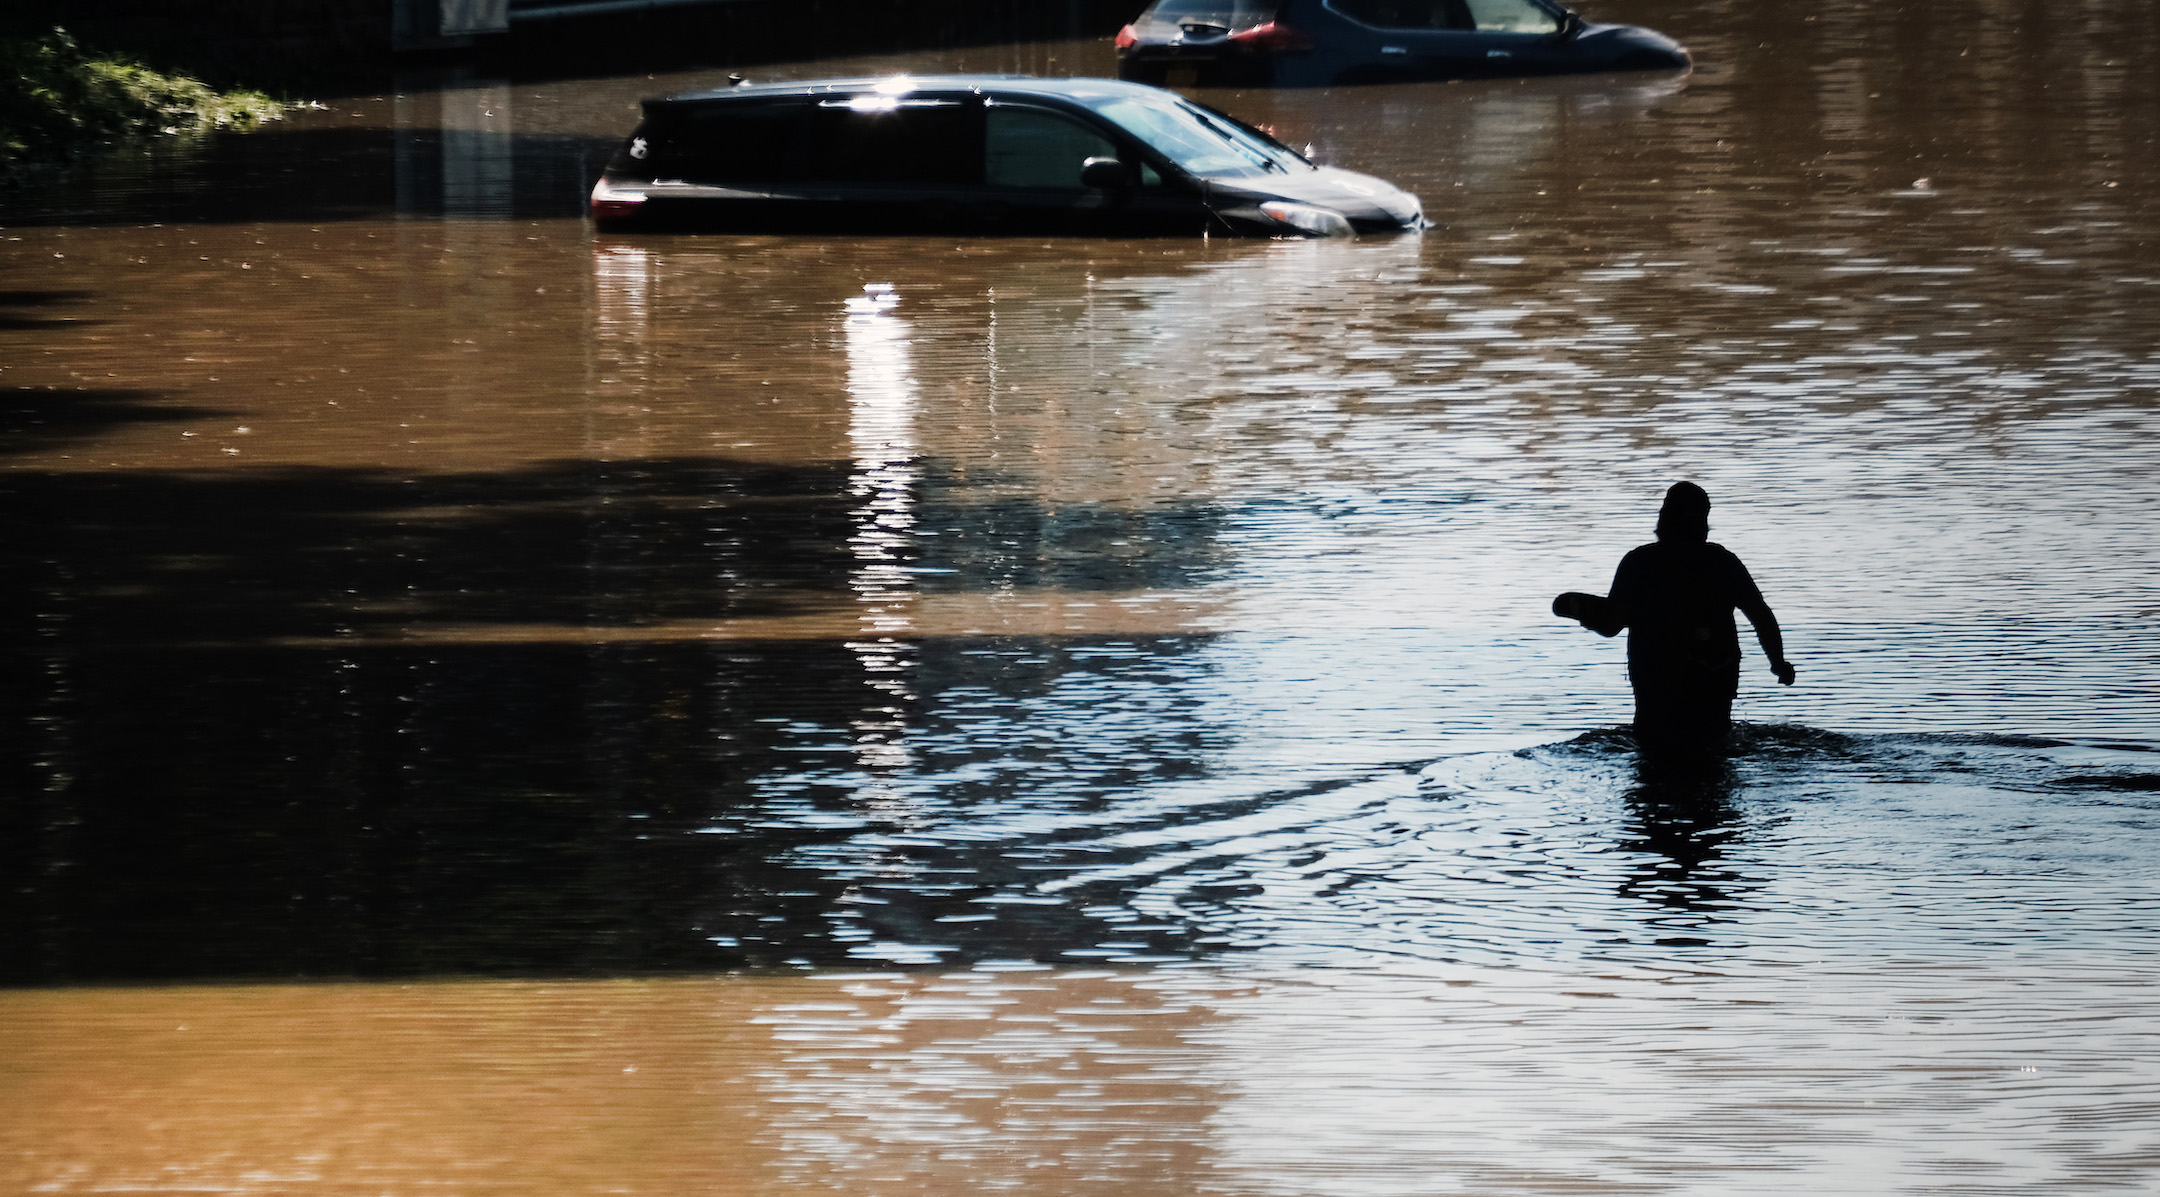 A man wades through the flooded Major Deegan Expressway in the Bronx, N.Y., following a night of heavy wind and rain from the remnants of Hurricane Ida, Sept. 2, 2021. (Photo/JTA-Spencer Platt-Getty Images)